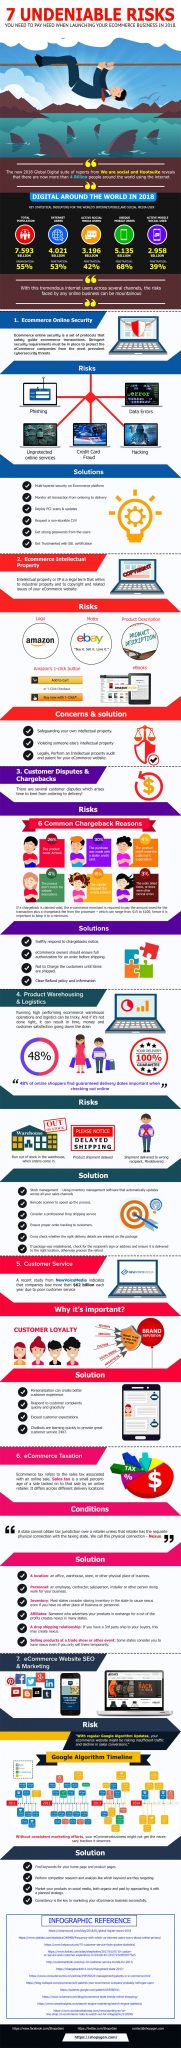 Top 7 Risks of an E-commerce Business